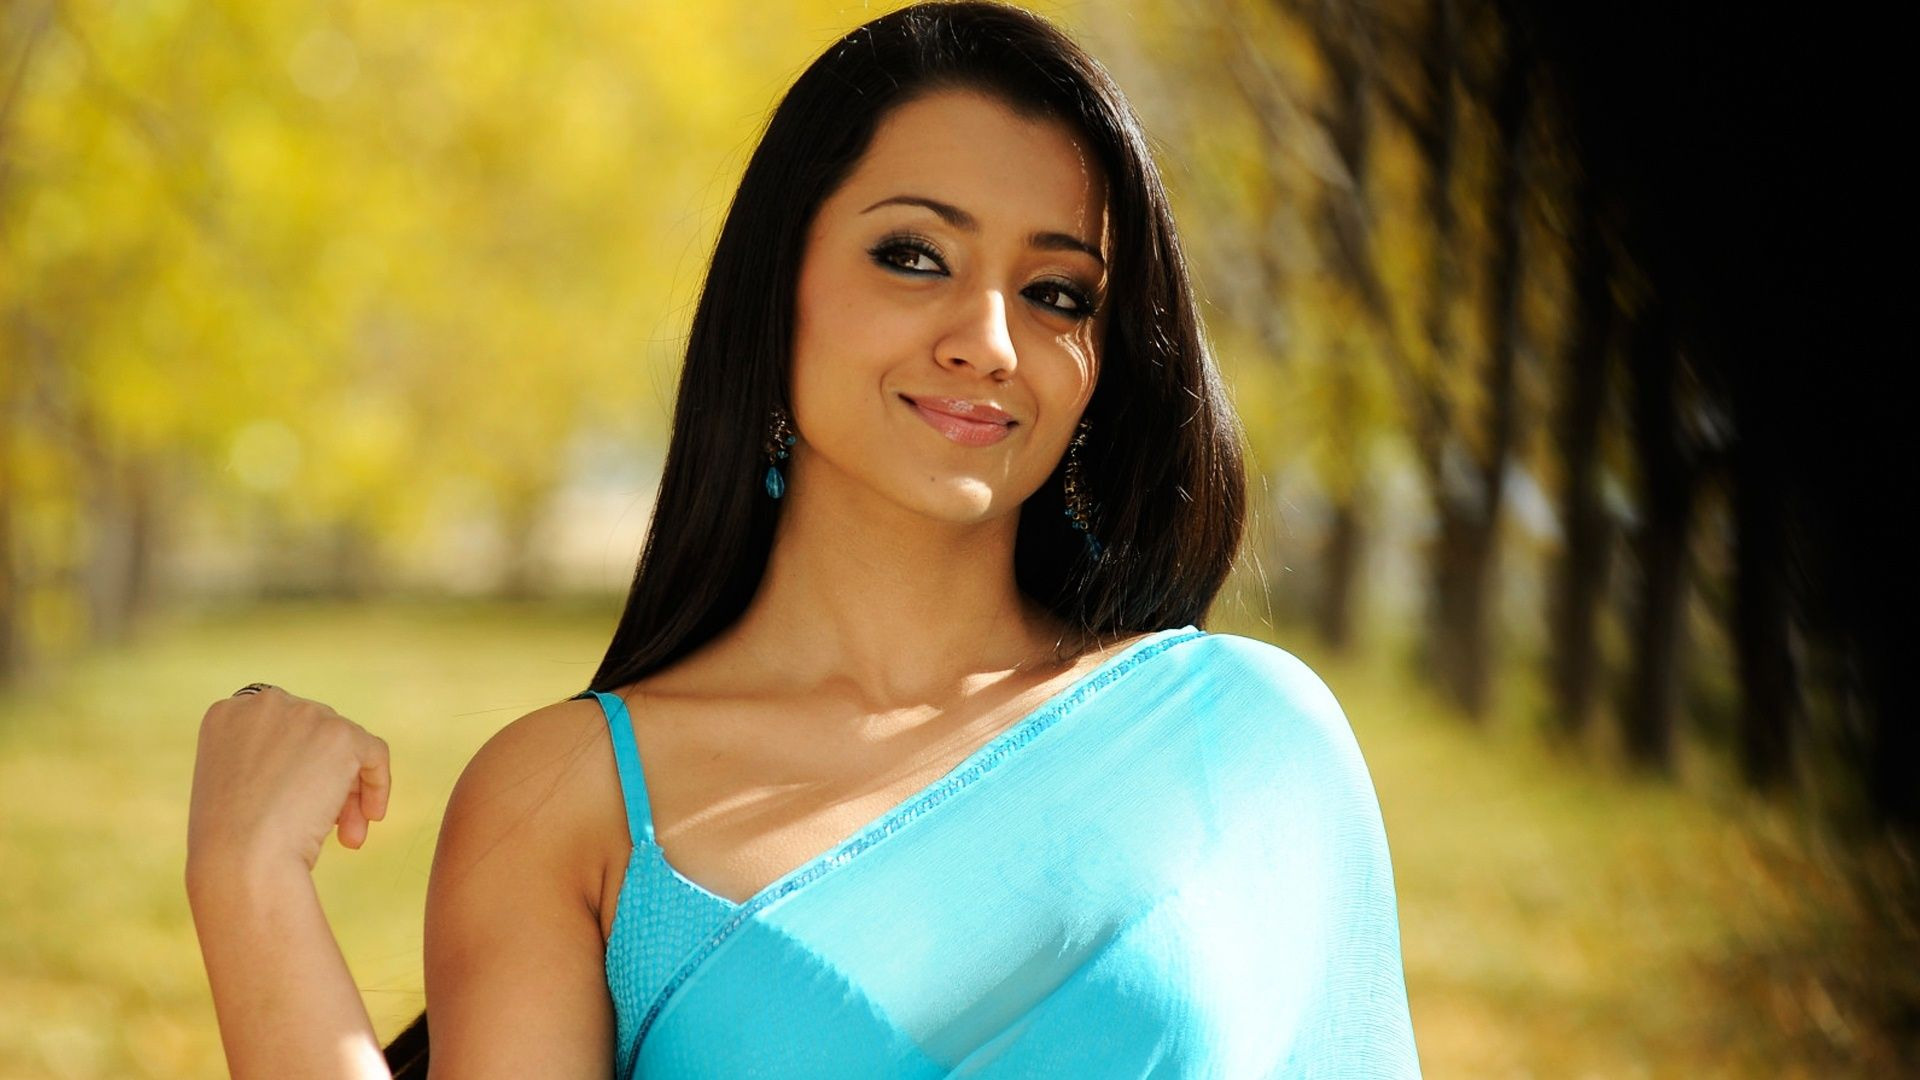 Trisha krishnan wallpapers trisha krishnan wallpaper 1 - Trisha Krishnan In Maxim Hd Wallpaper